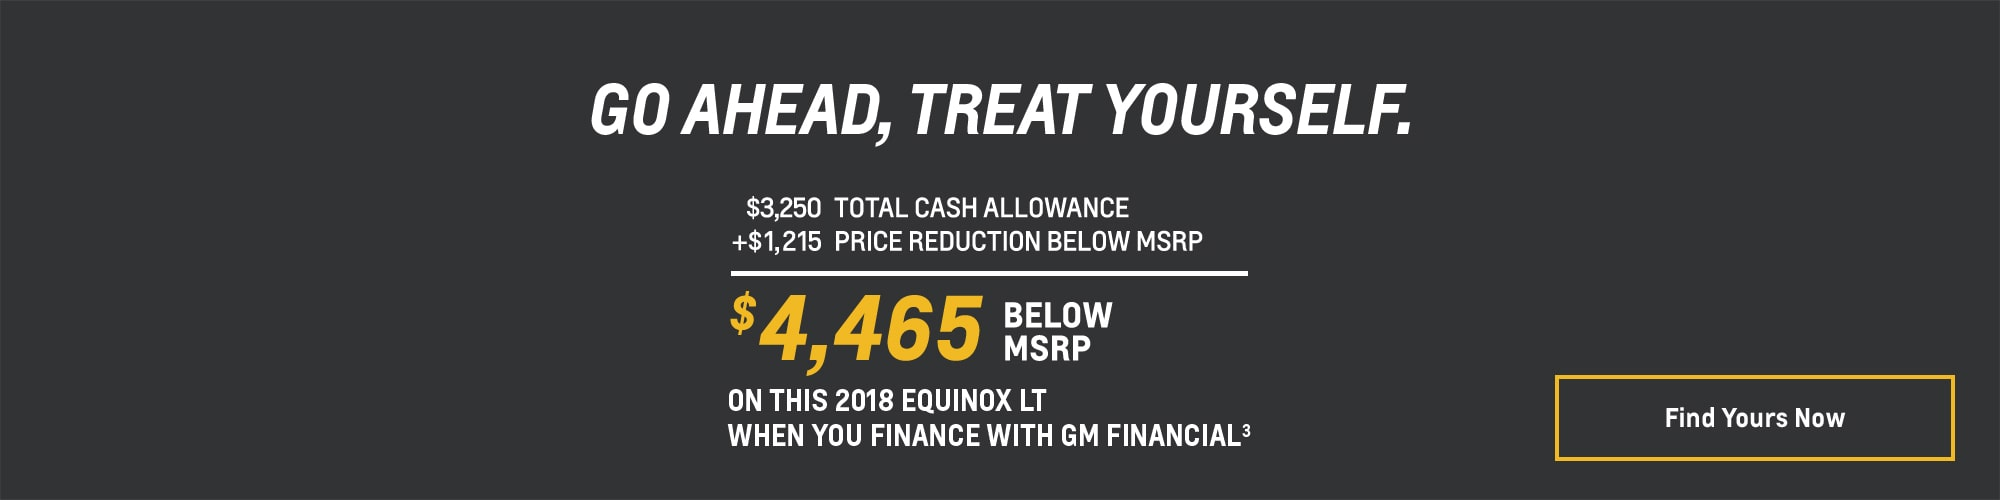 2018 Equinox - $4,465 Below MSRP